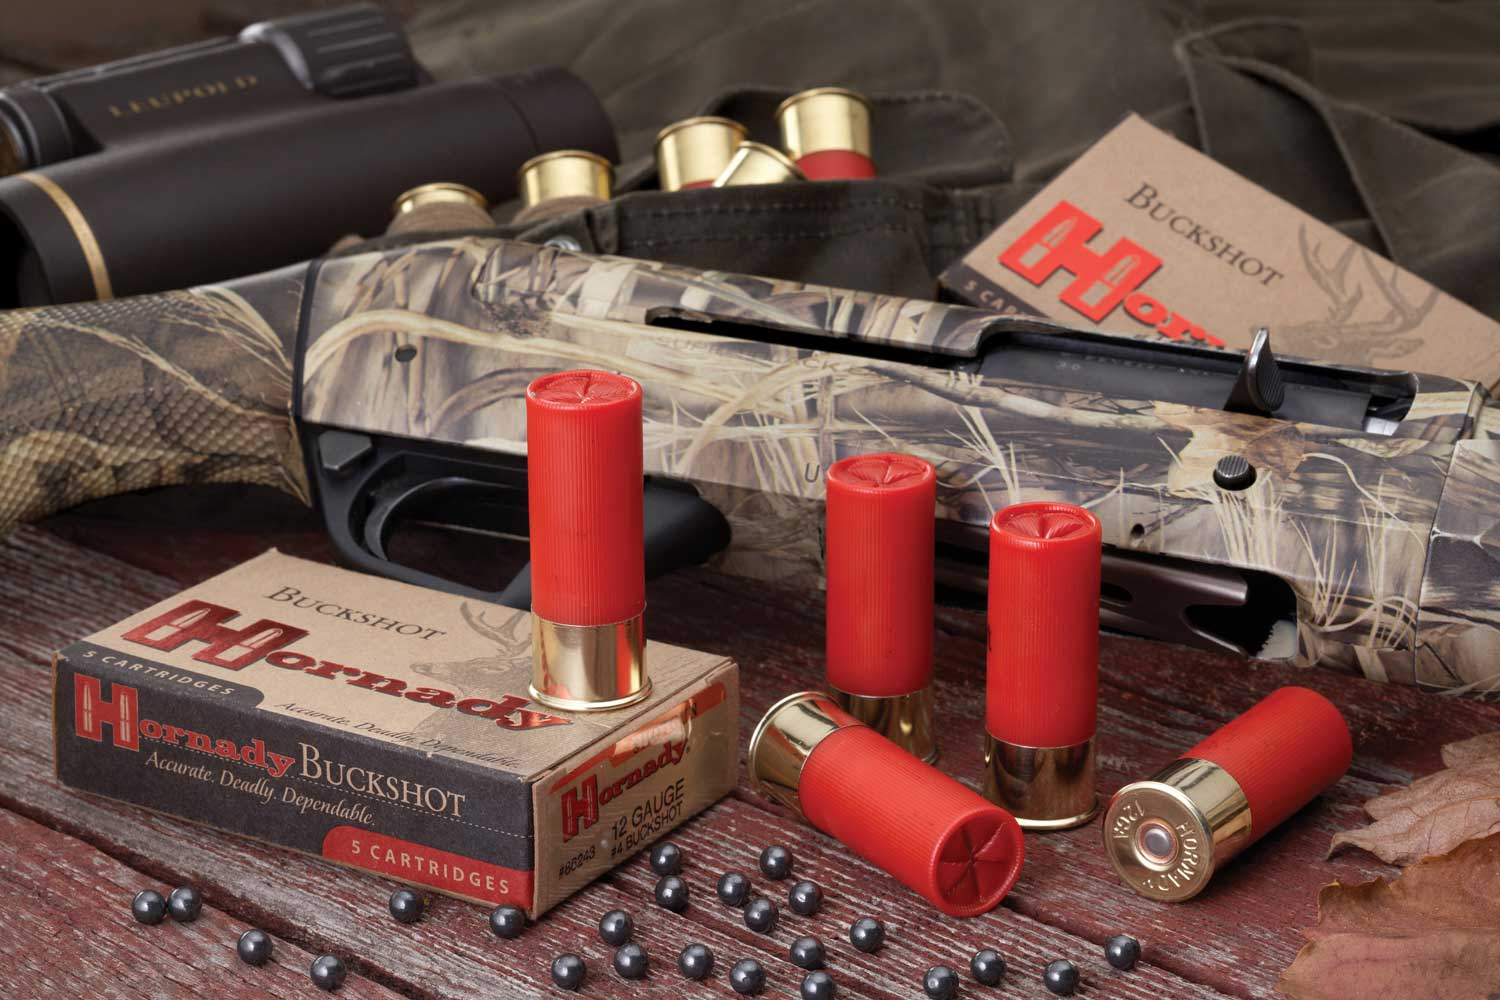 Hornady buckshot 12 gauge shells with camouflaged shotgun